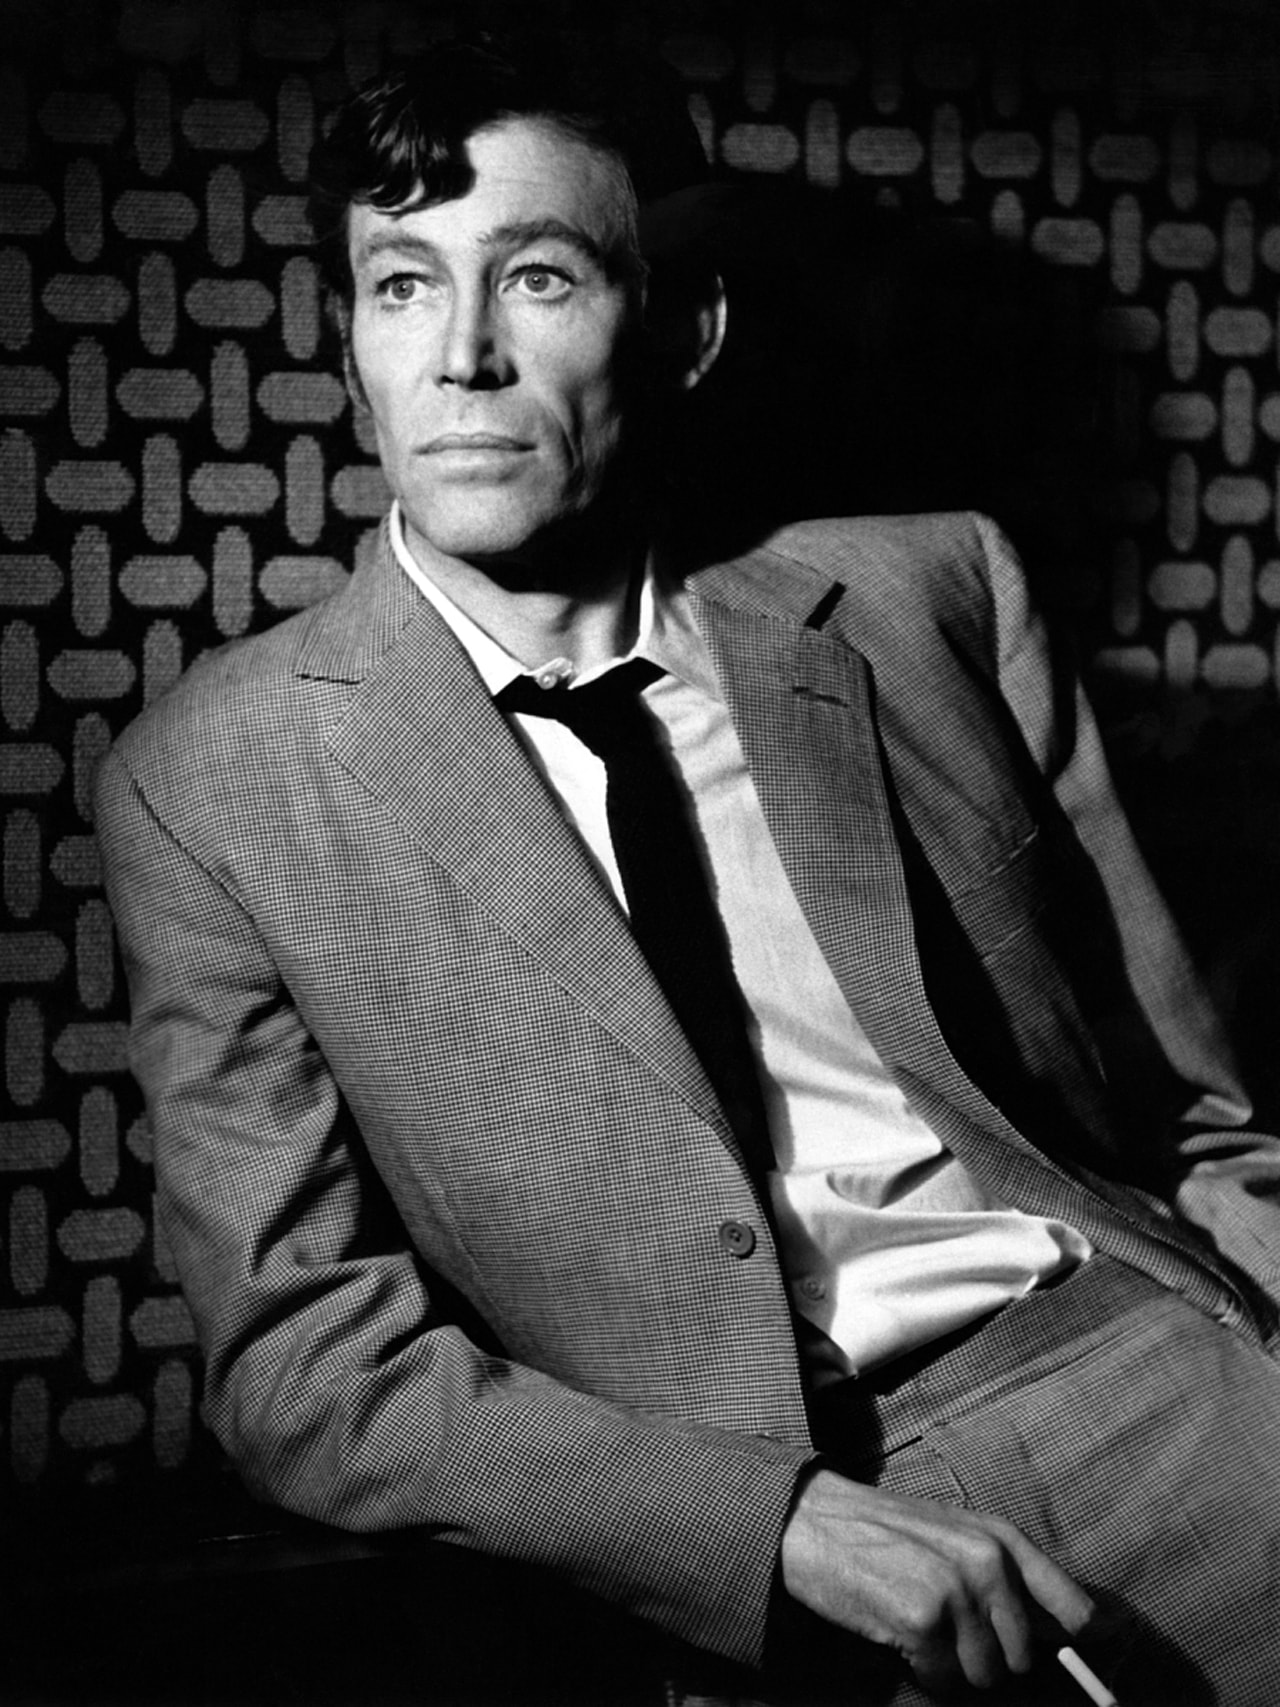 Peter O'toole For mobile